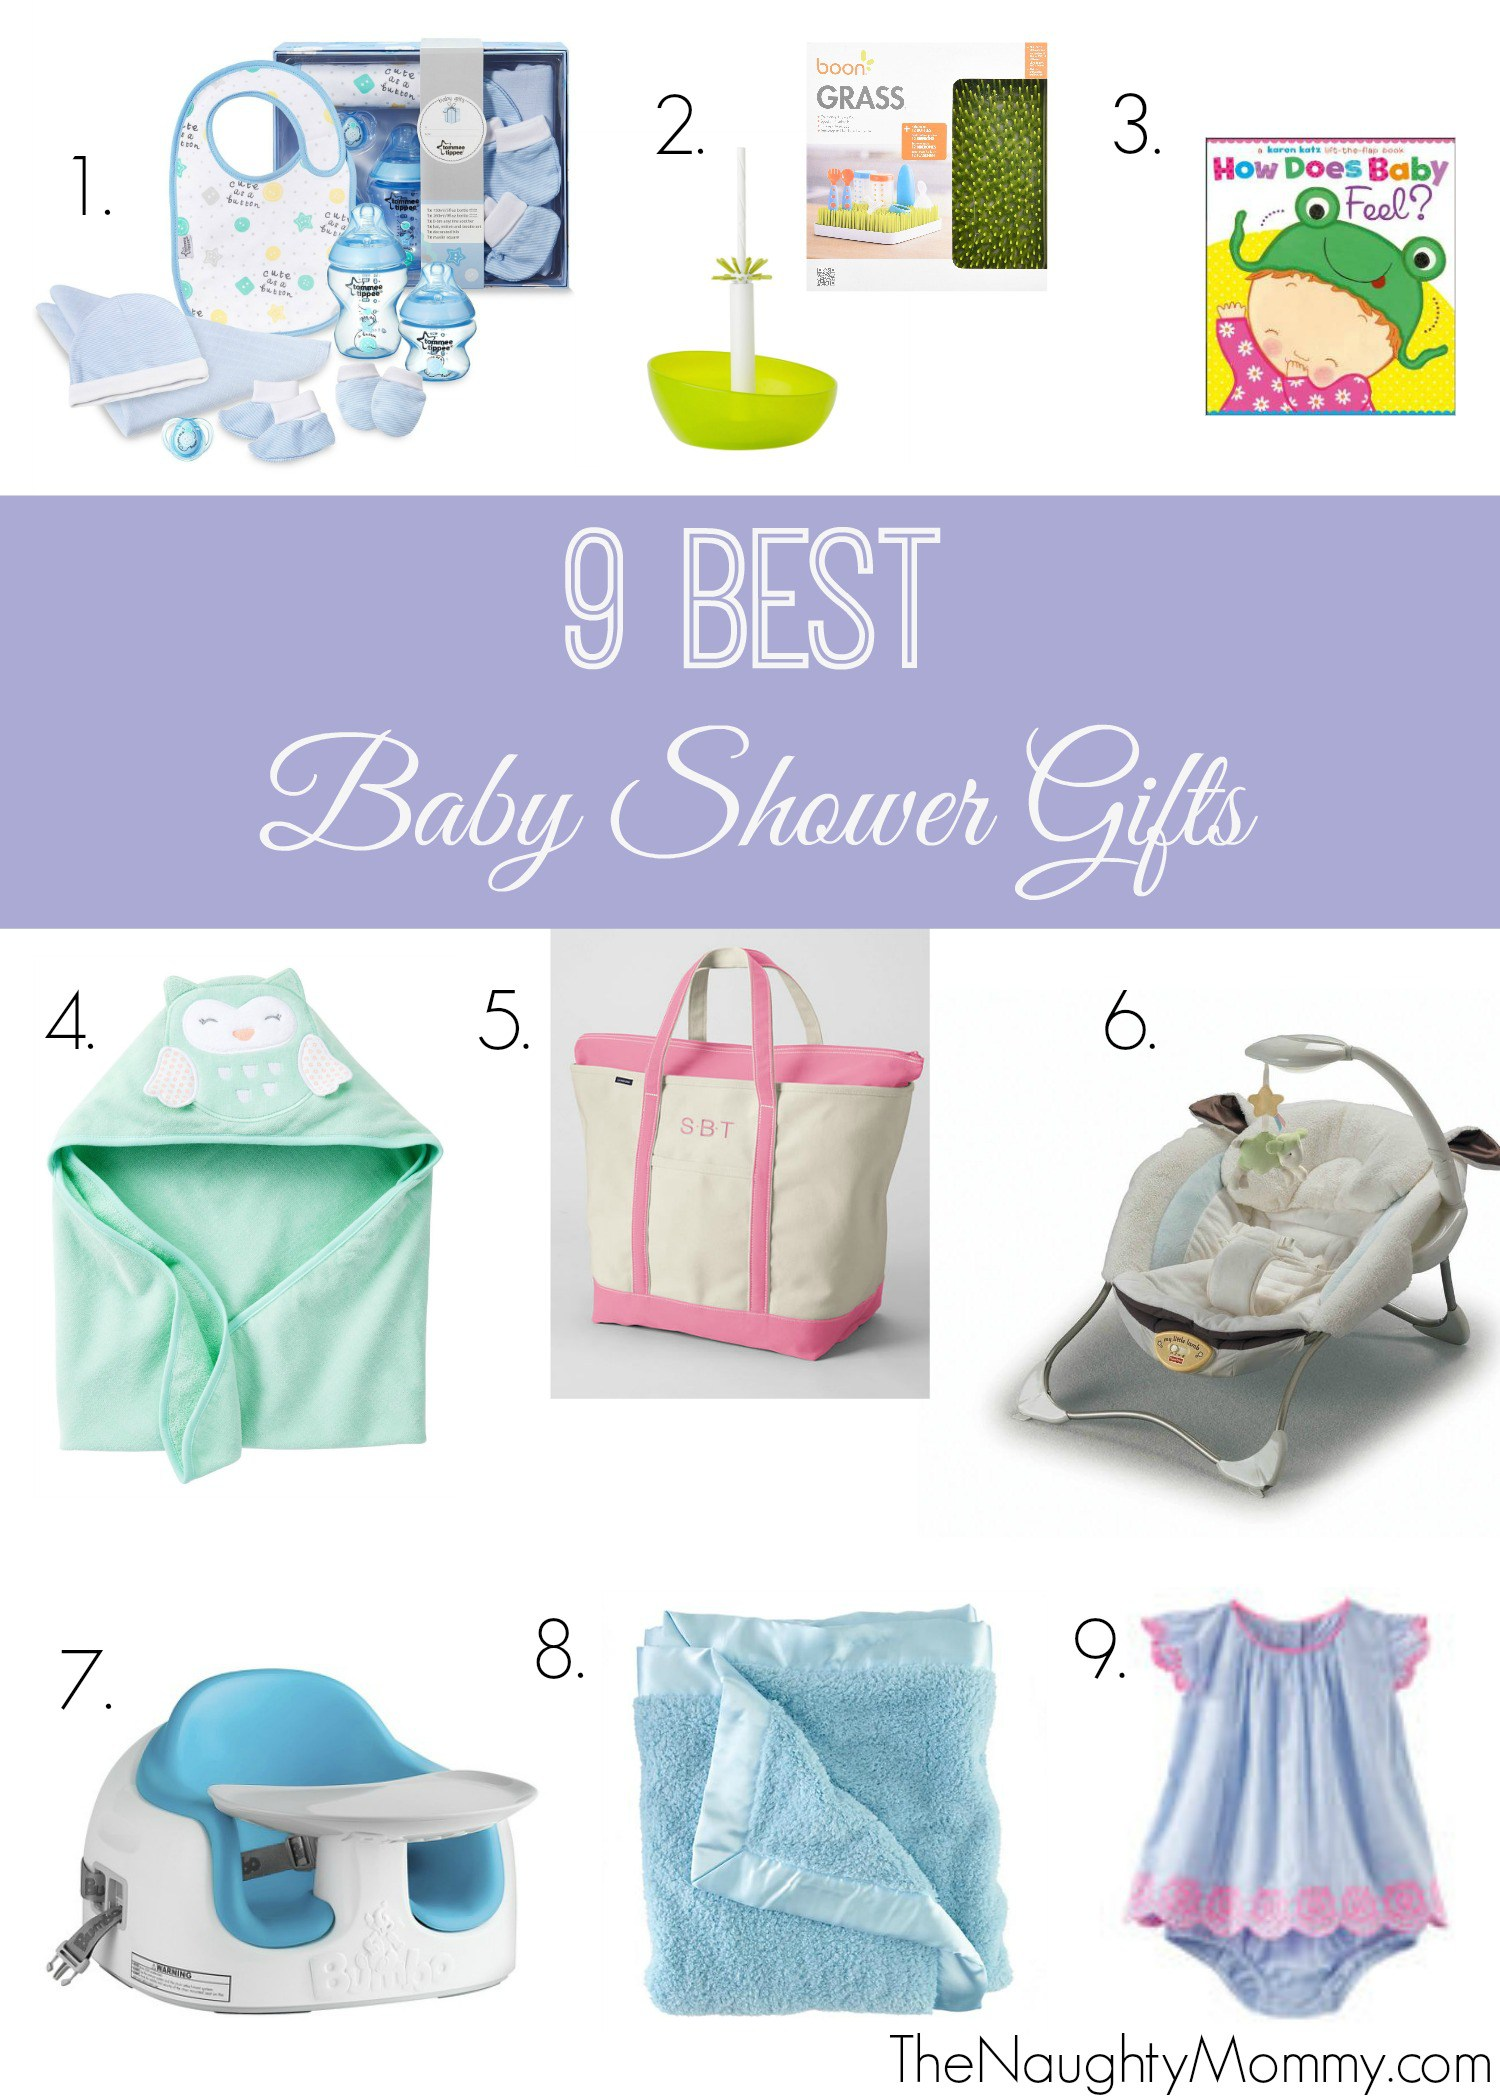 Full Size of Baby Shower:best Baby Shower Gifts And Baby Shower Products With Mi Baby Shower Plus Baby Shower Party Supplies Together With Baby Shower Activities As Well As Baby Shower Punch Mi Baby Shower Owl Baby Shower Invitations Sprinkle Baby Shower Planning A Baby Shower Cheap Baby Shower